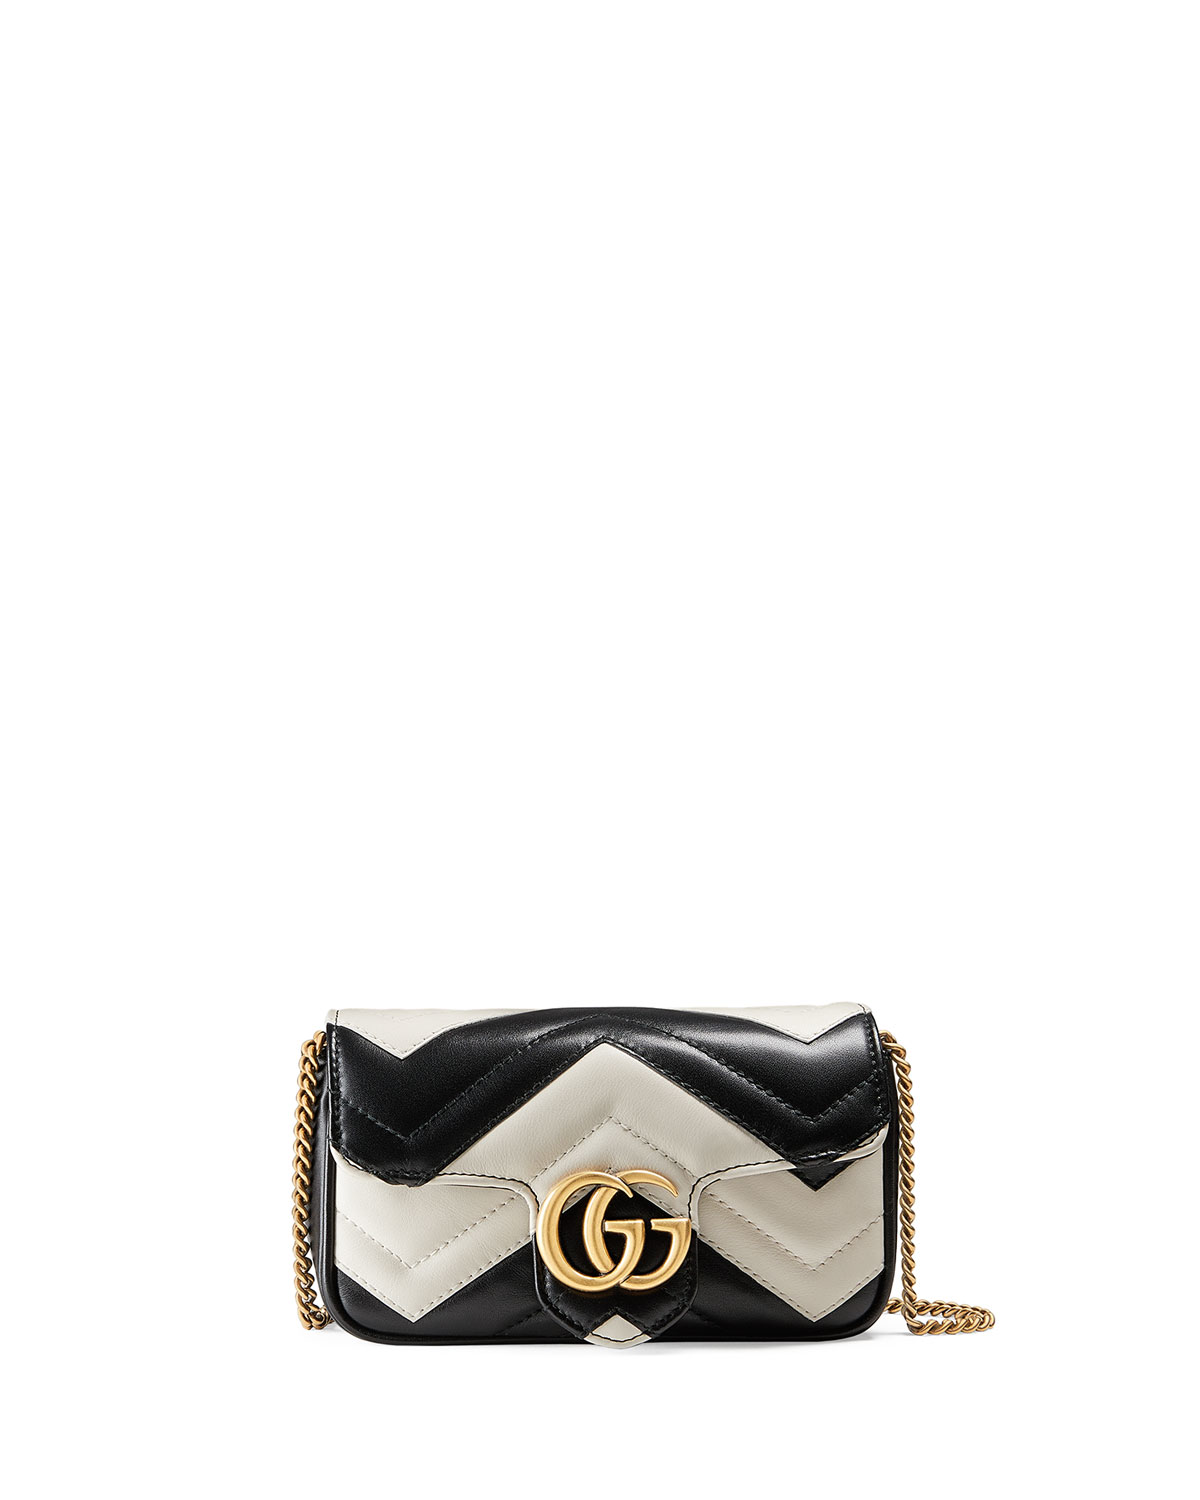 2e6b7d91f60 Gucci GG Marmont Matelassé Leather Super Mini Bag